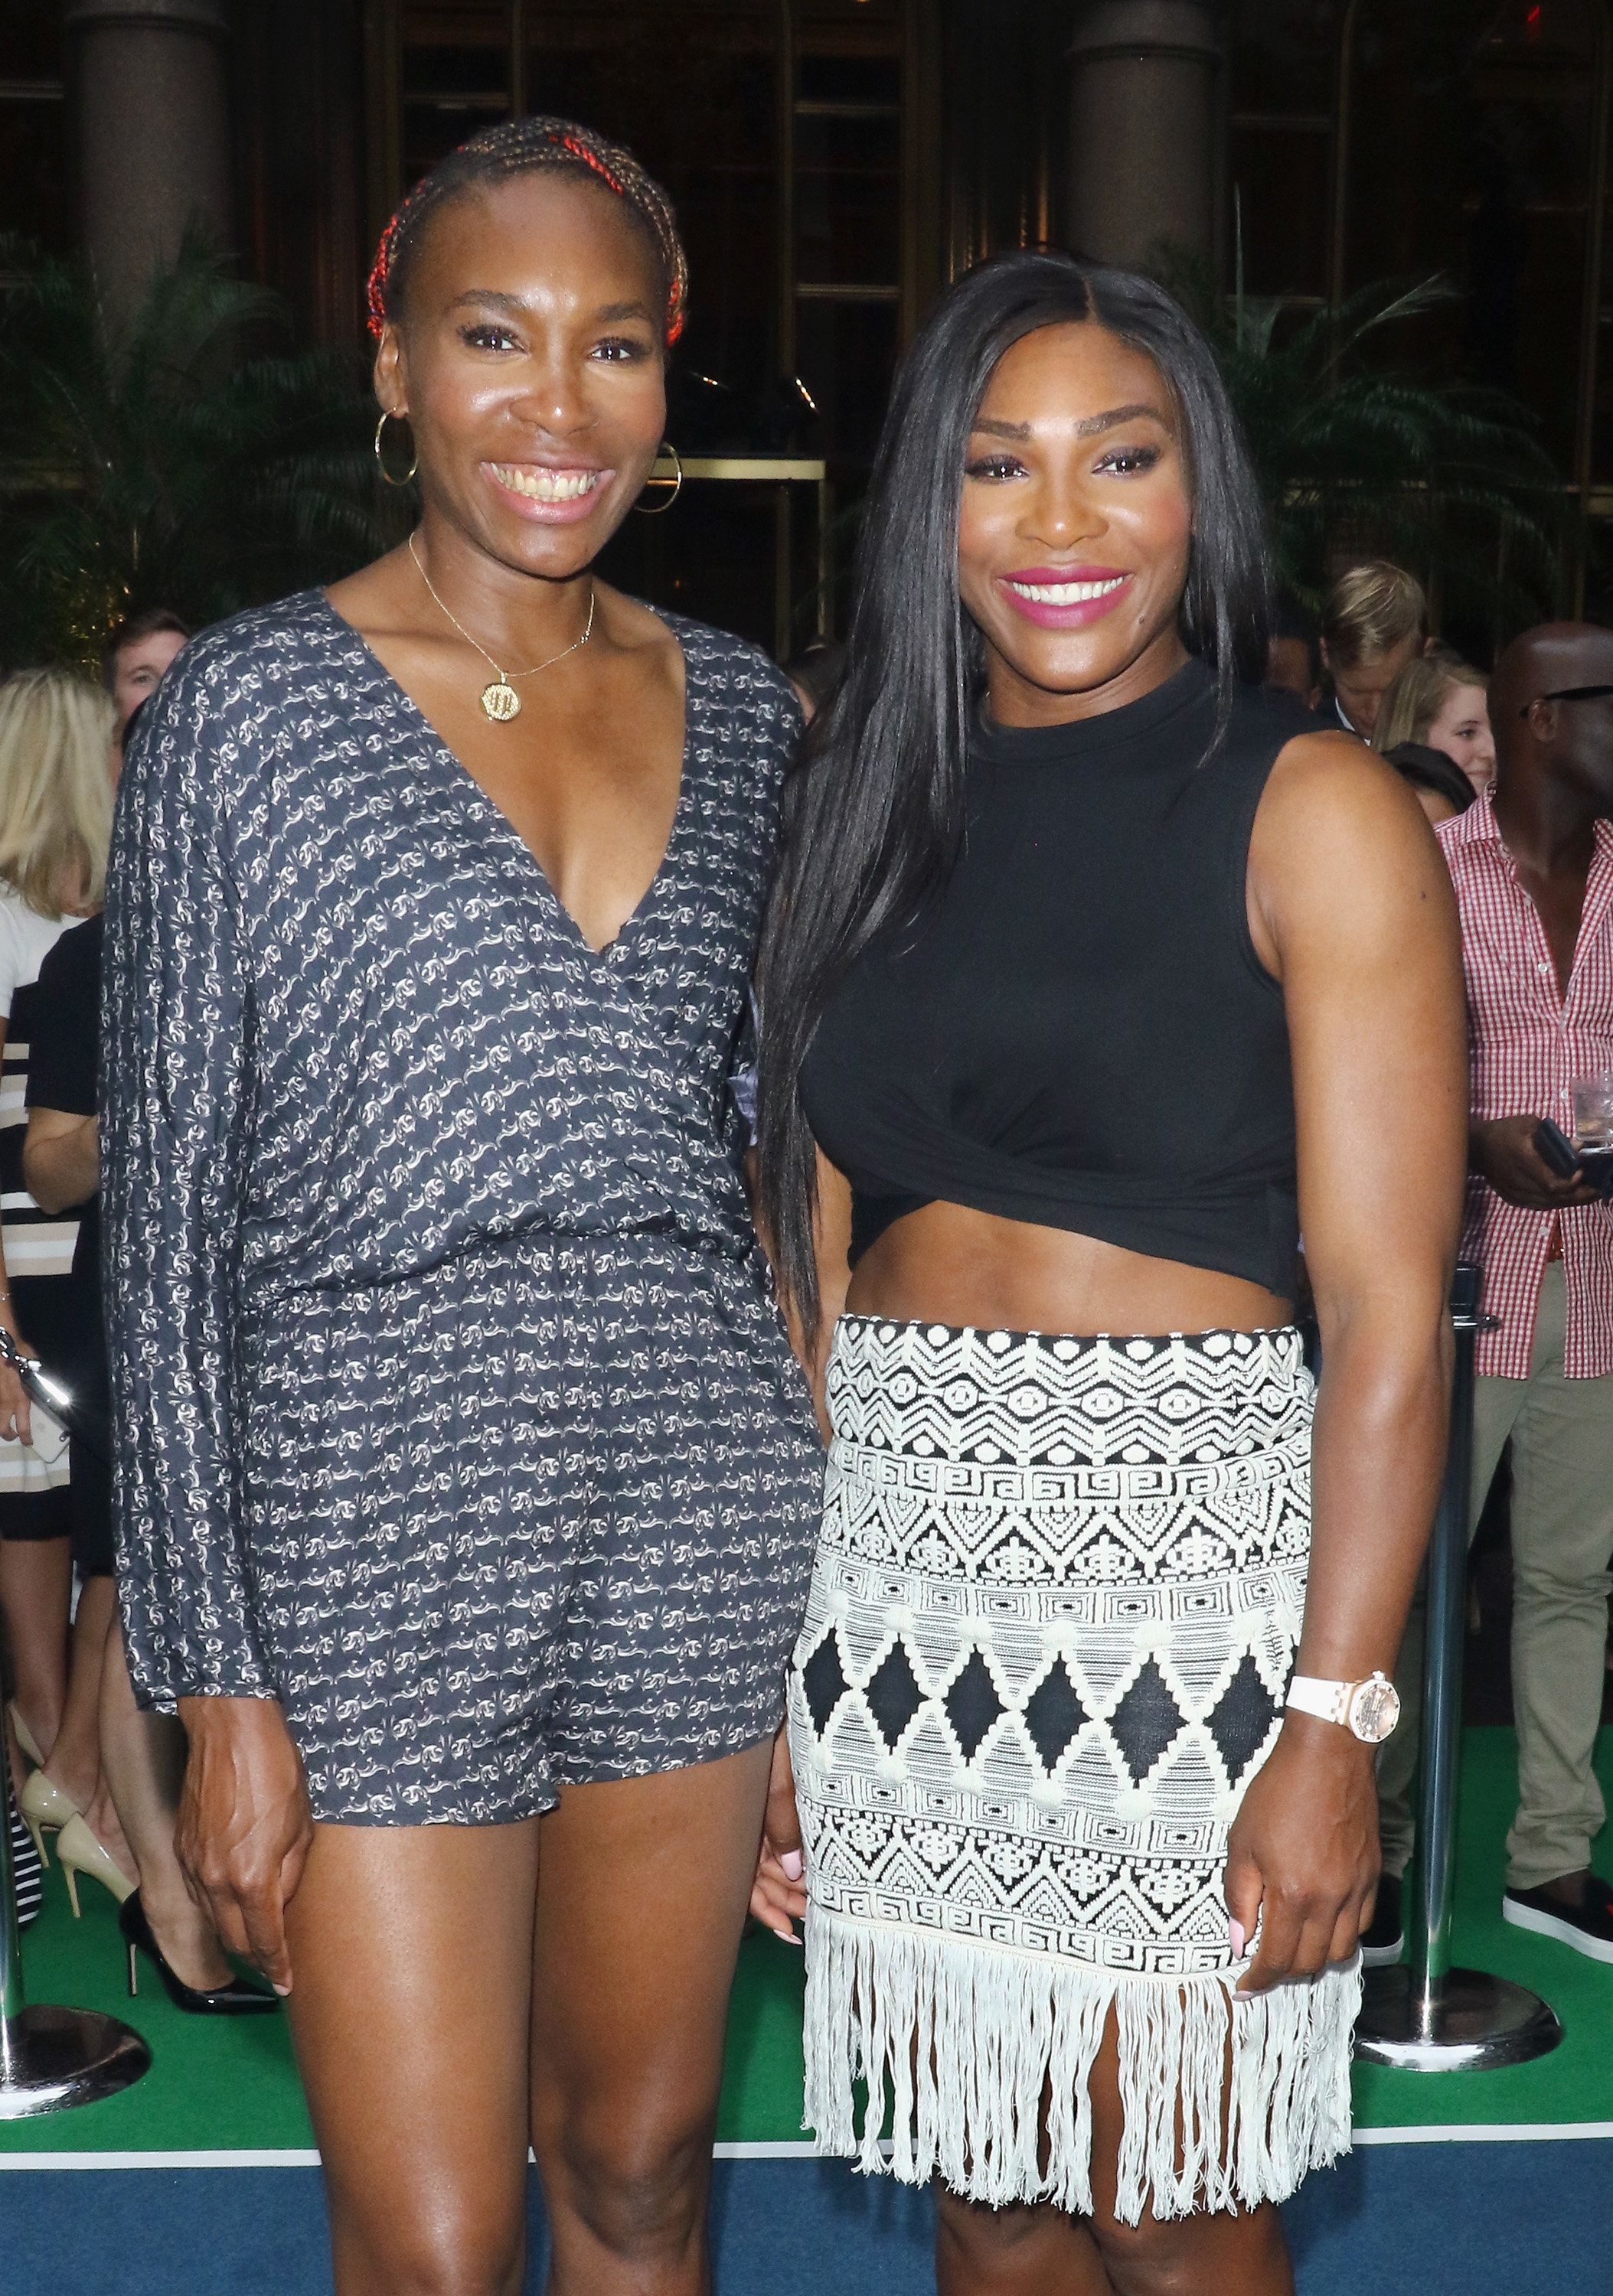 NEW YORK, NY - AUGUST 25:  Tennis players Venus Williams and Serena Williams attend the Virtual Tennis Tournament hosted by Rafael Nadal at Lotte New York Palace on August 25, 2016 in New York City.  (Photo by Jim Spellman/WireImage)